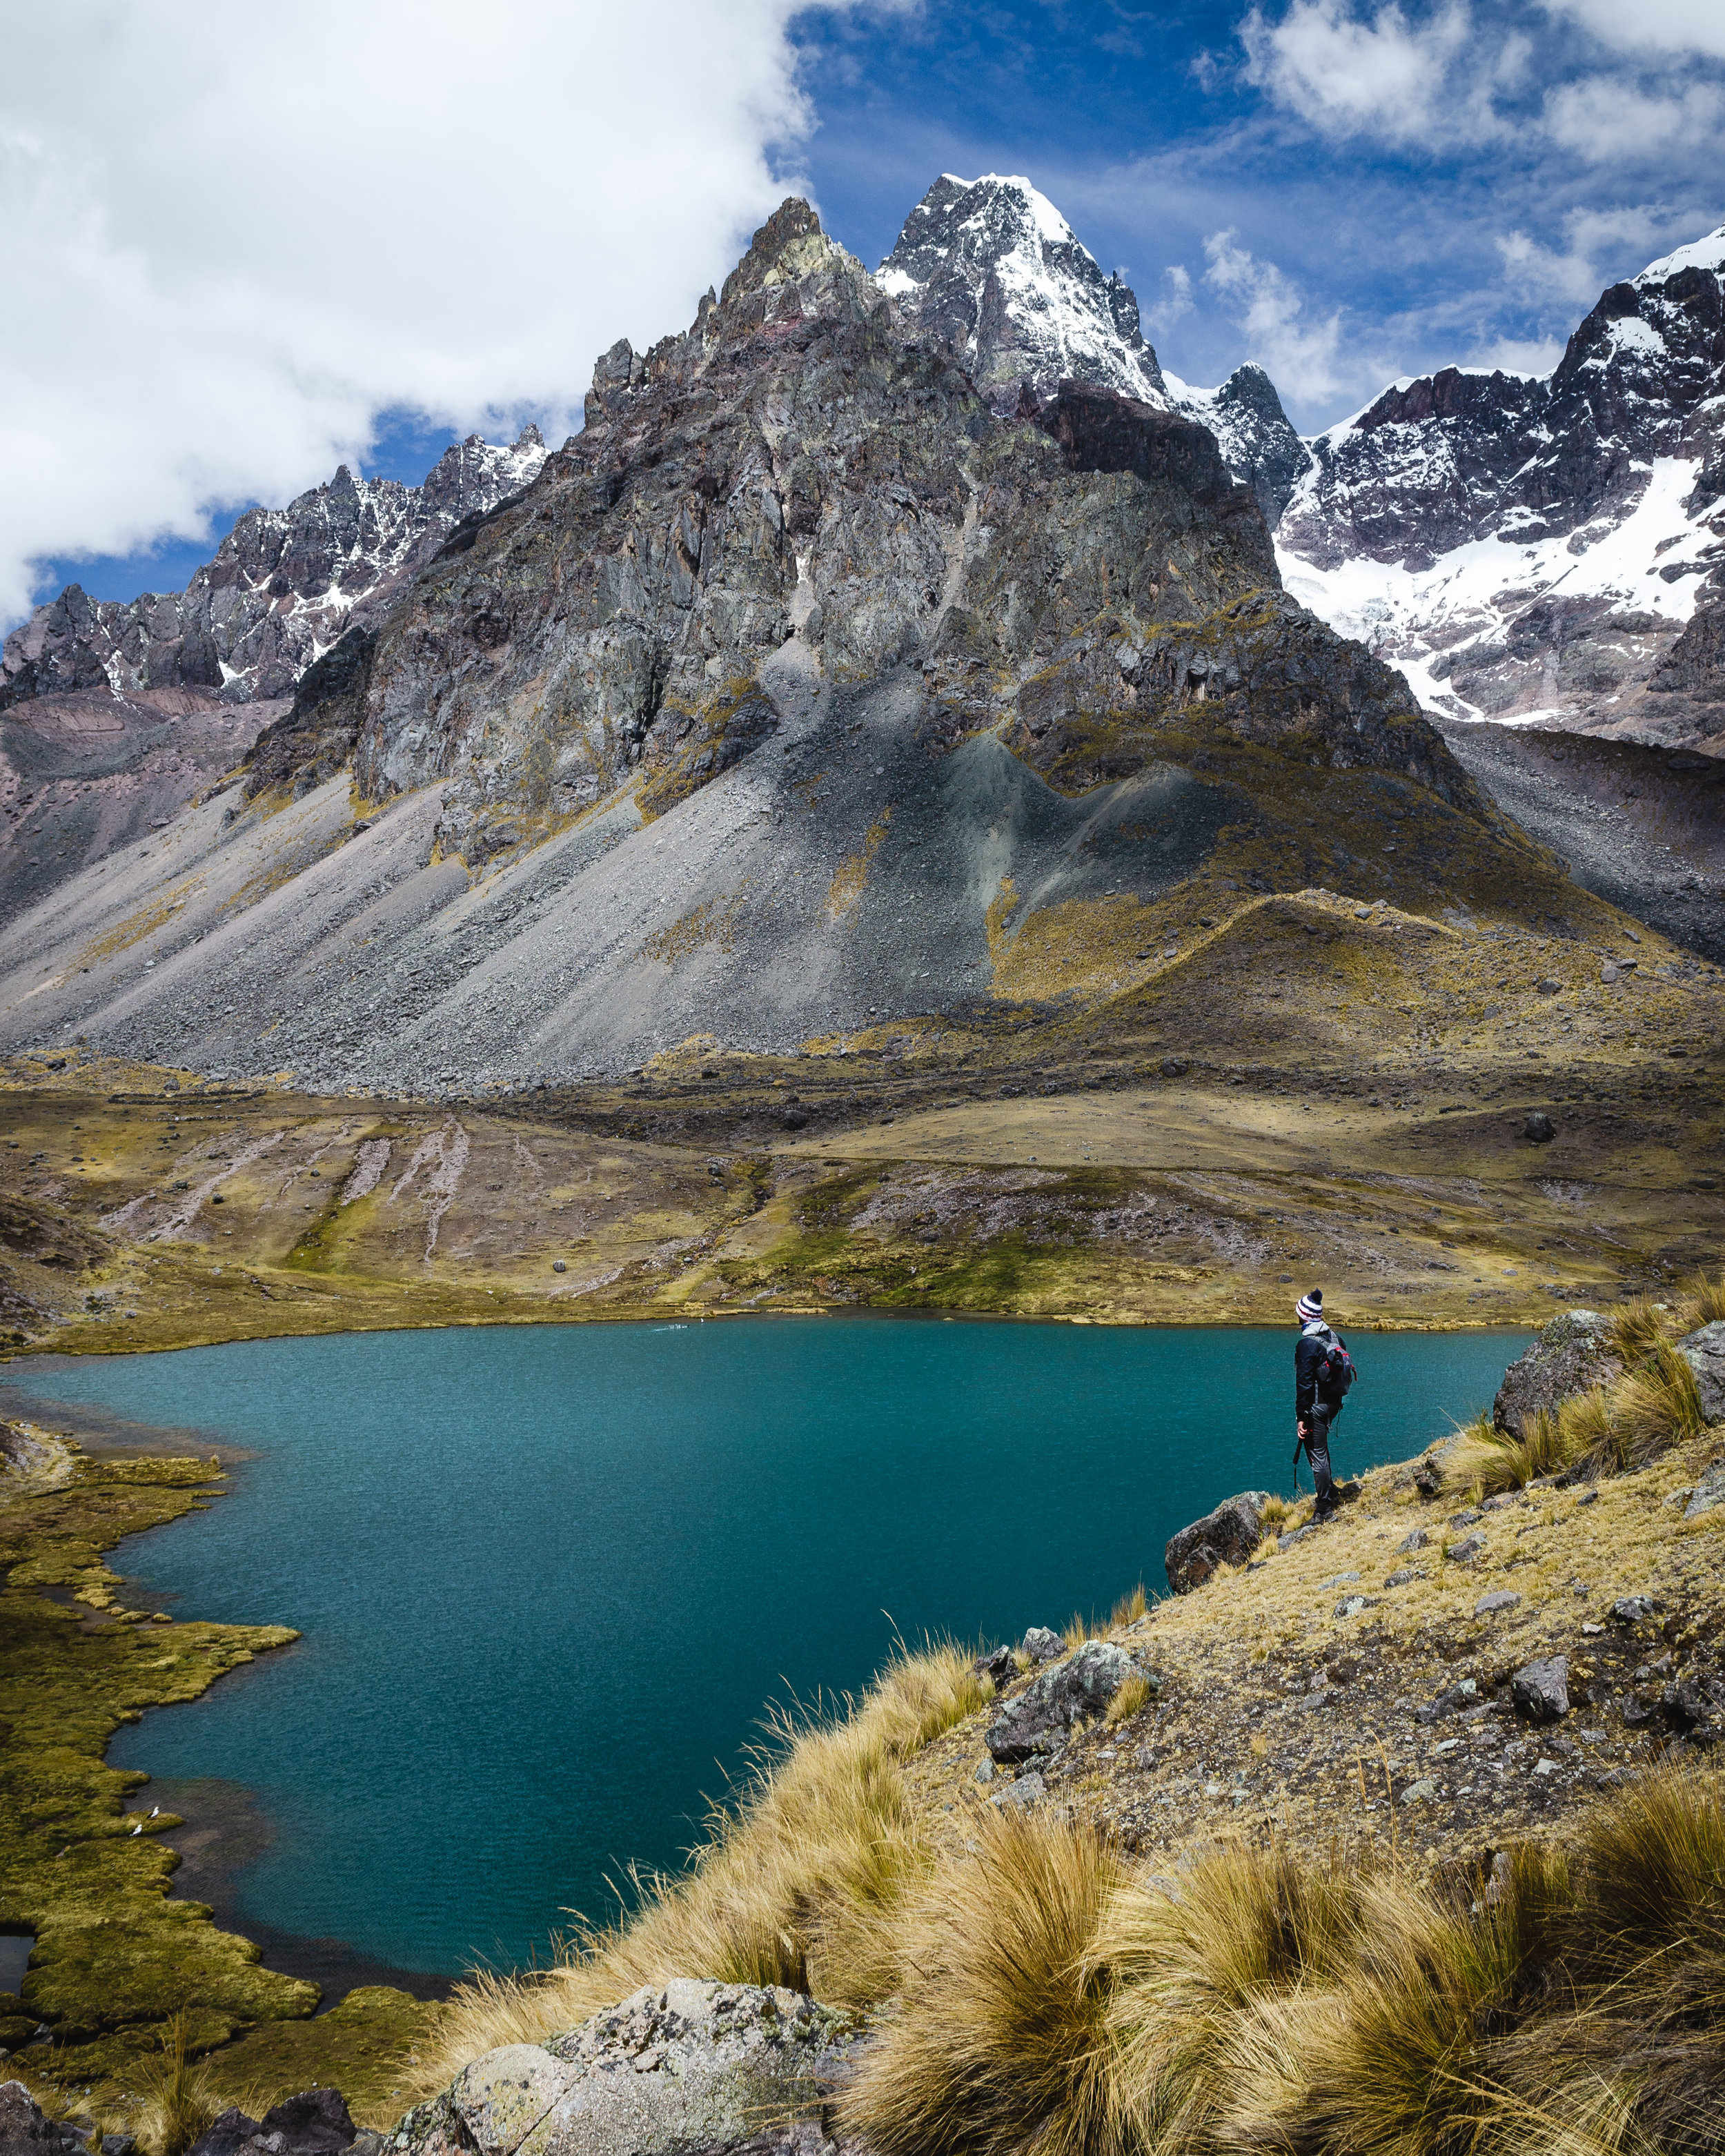 the 7 lagoons of ausangate - Full Day Tour from Cusco